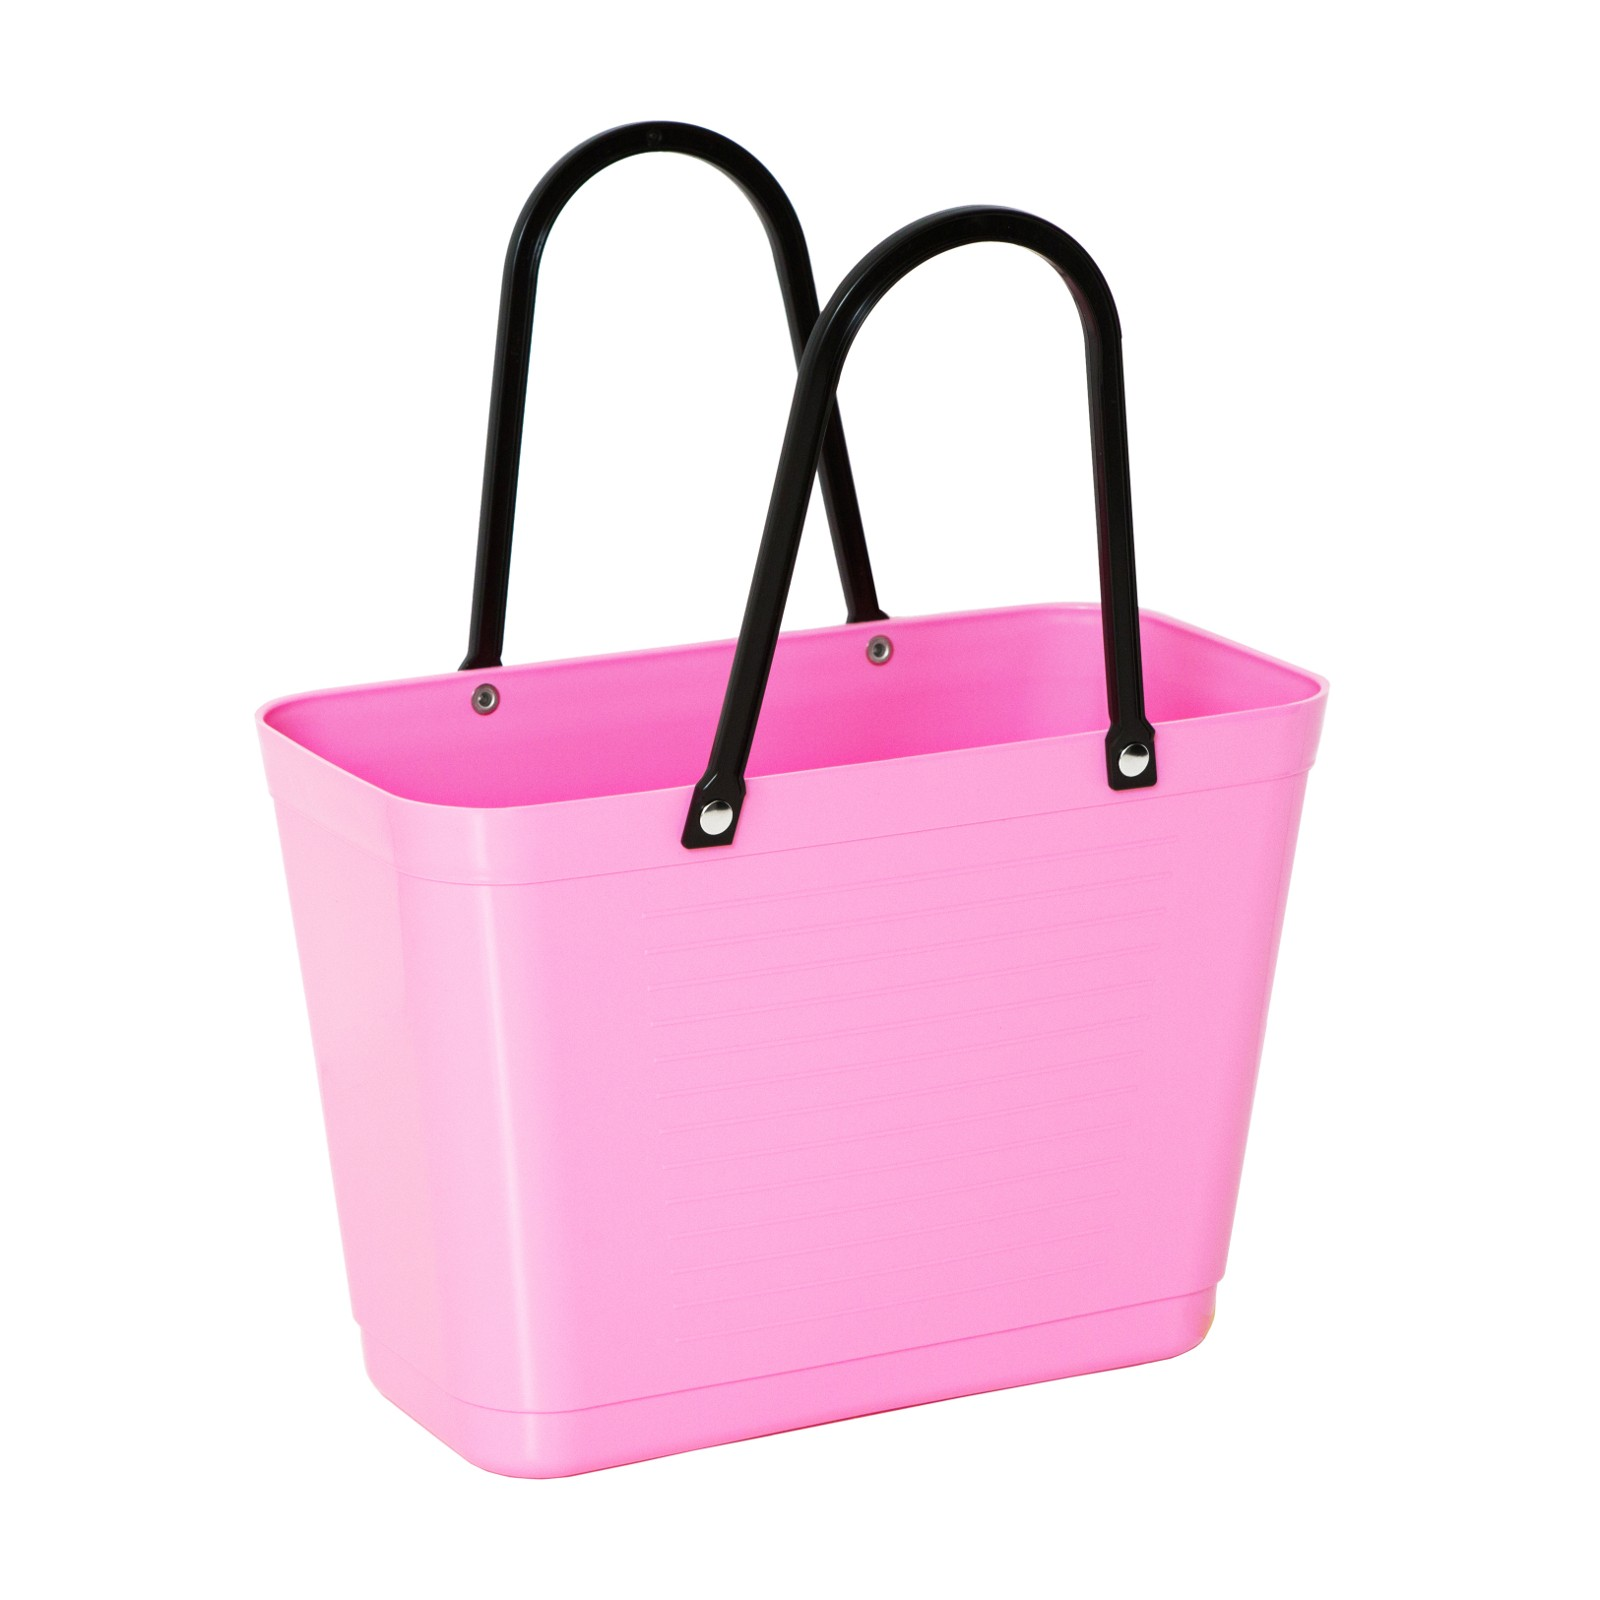 hinza 201-hinza-bag-small-pink